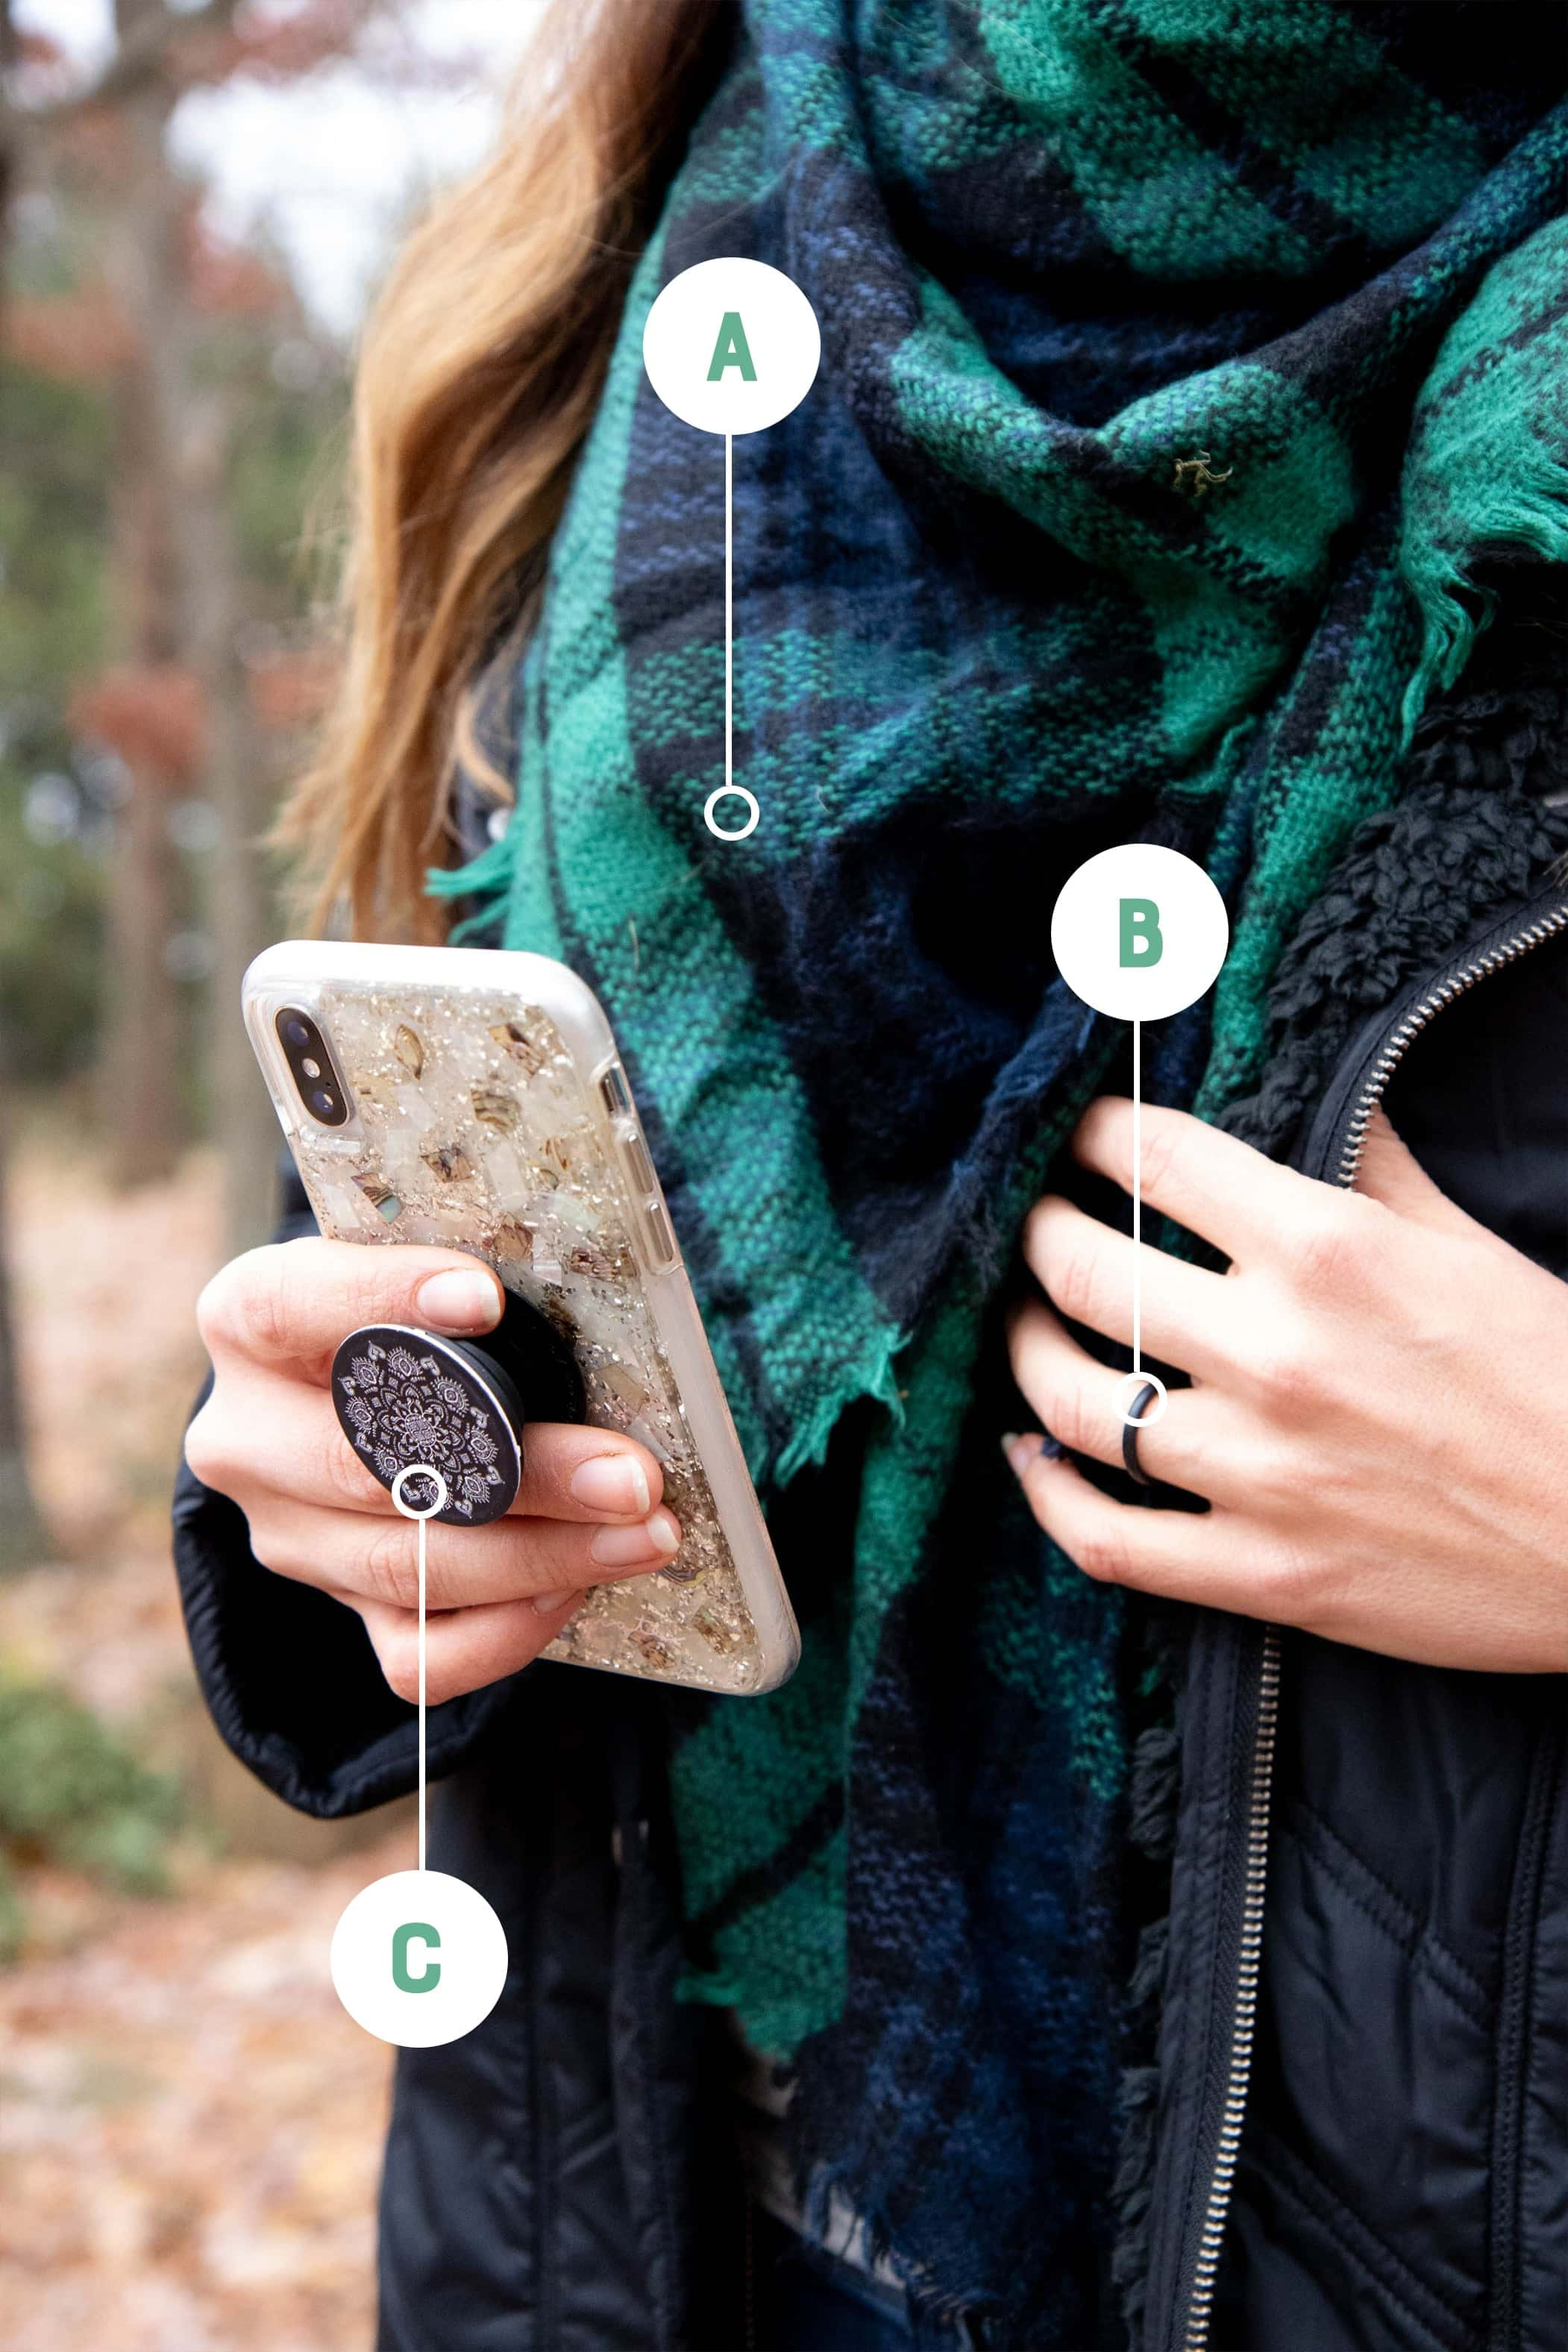 A woman's torso with a blanket scarf, silicone ring, and popsocket labeled with letters